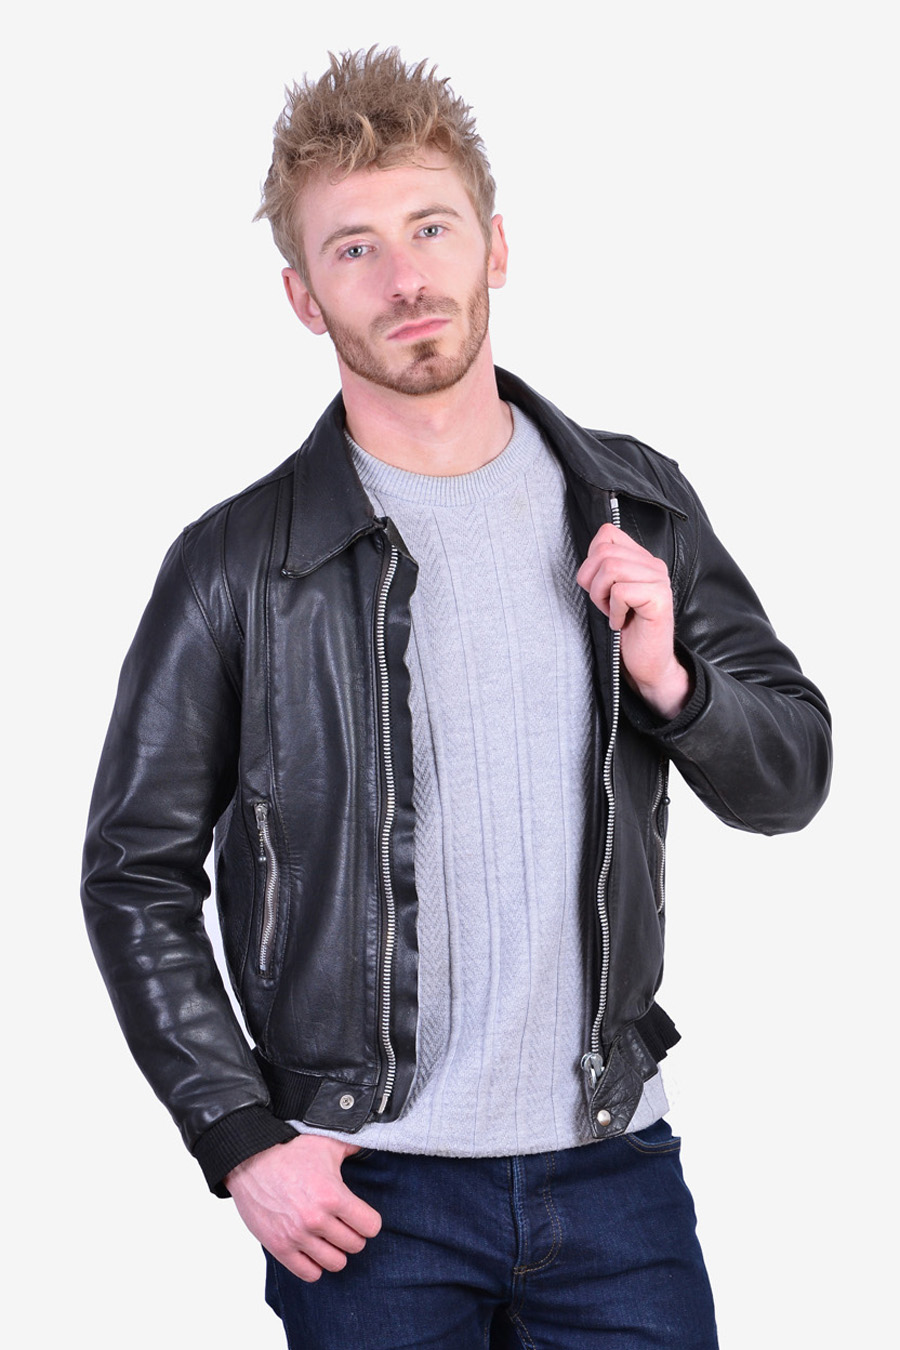 Vintage 1960's Belstaff leather jacket